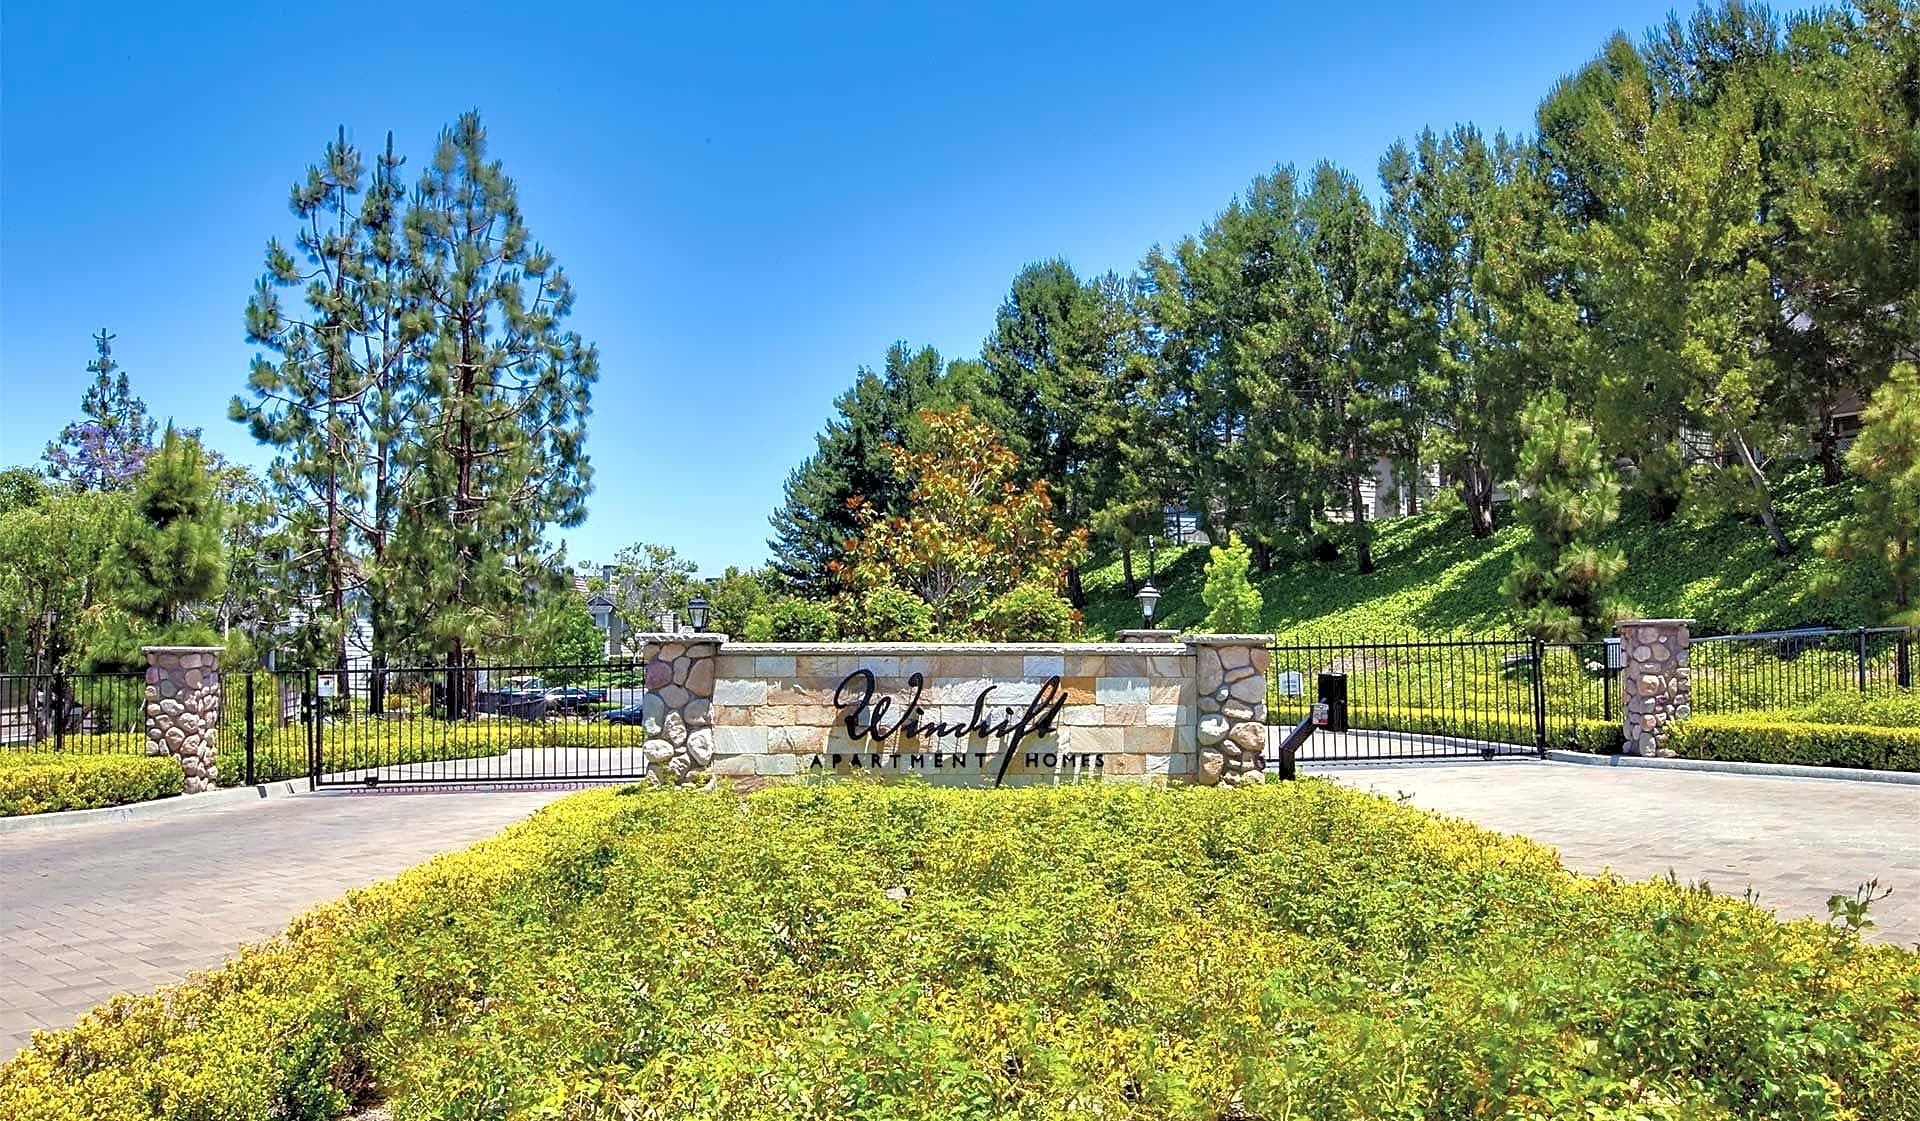 Gated community located in Oceanside, CA